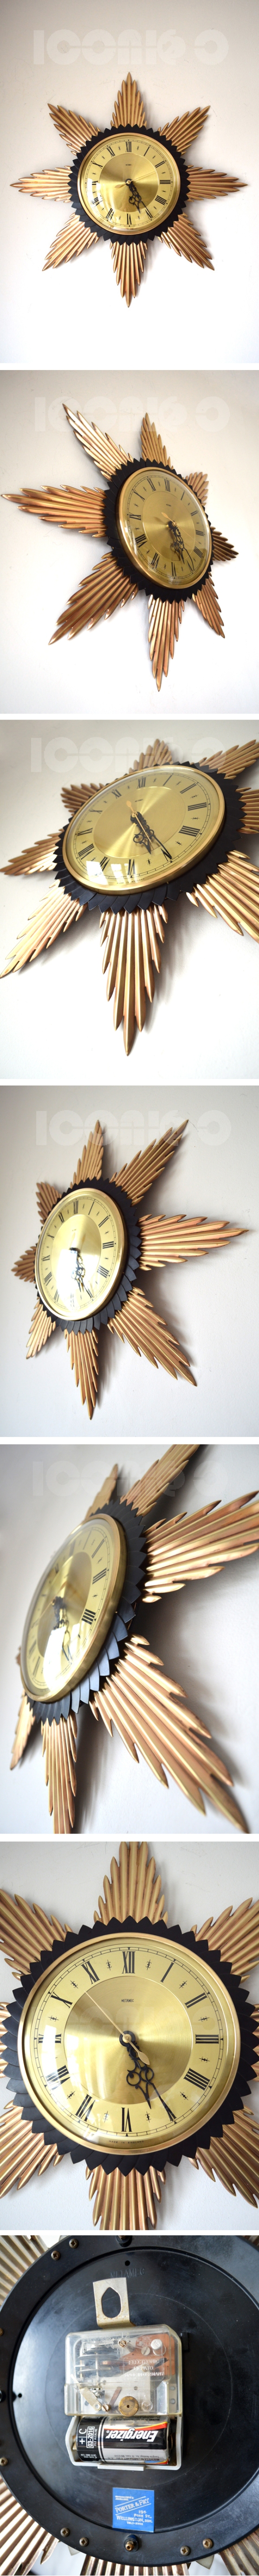 metamec-50s-gold-face-sunburst-wall-clock